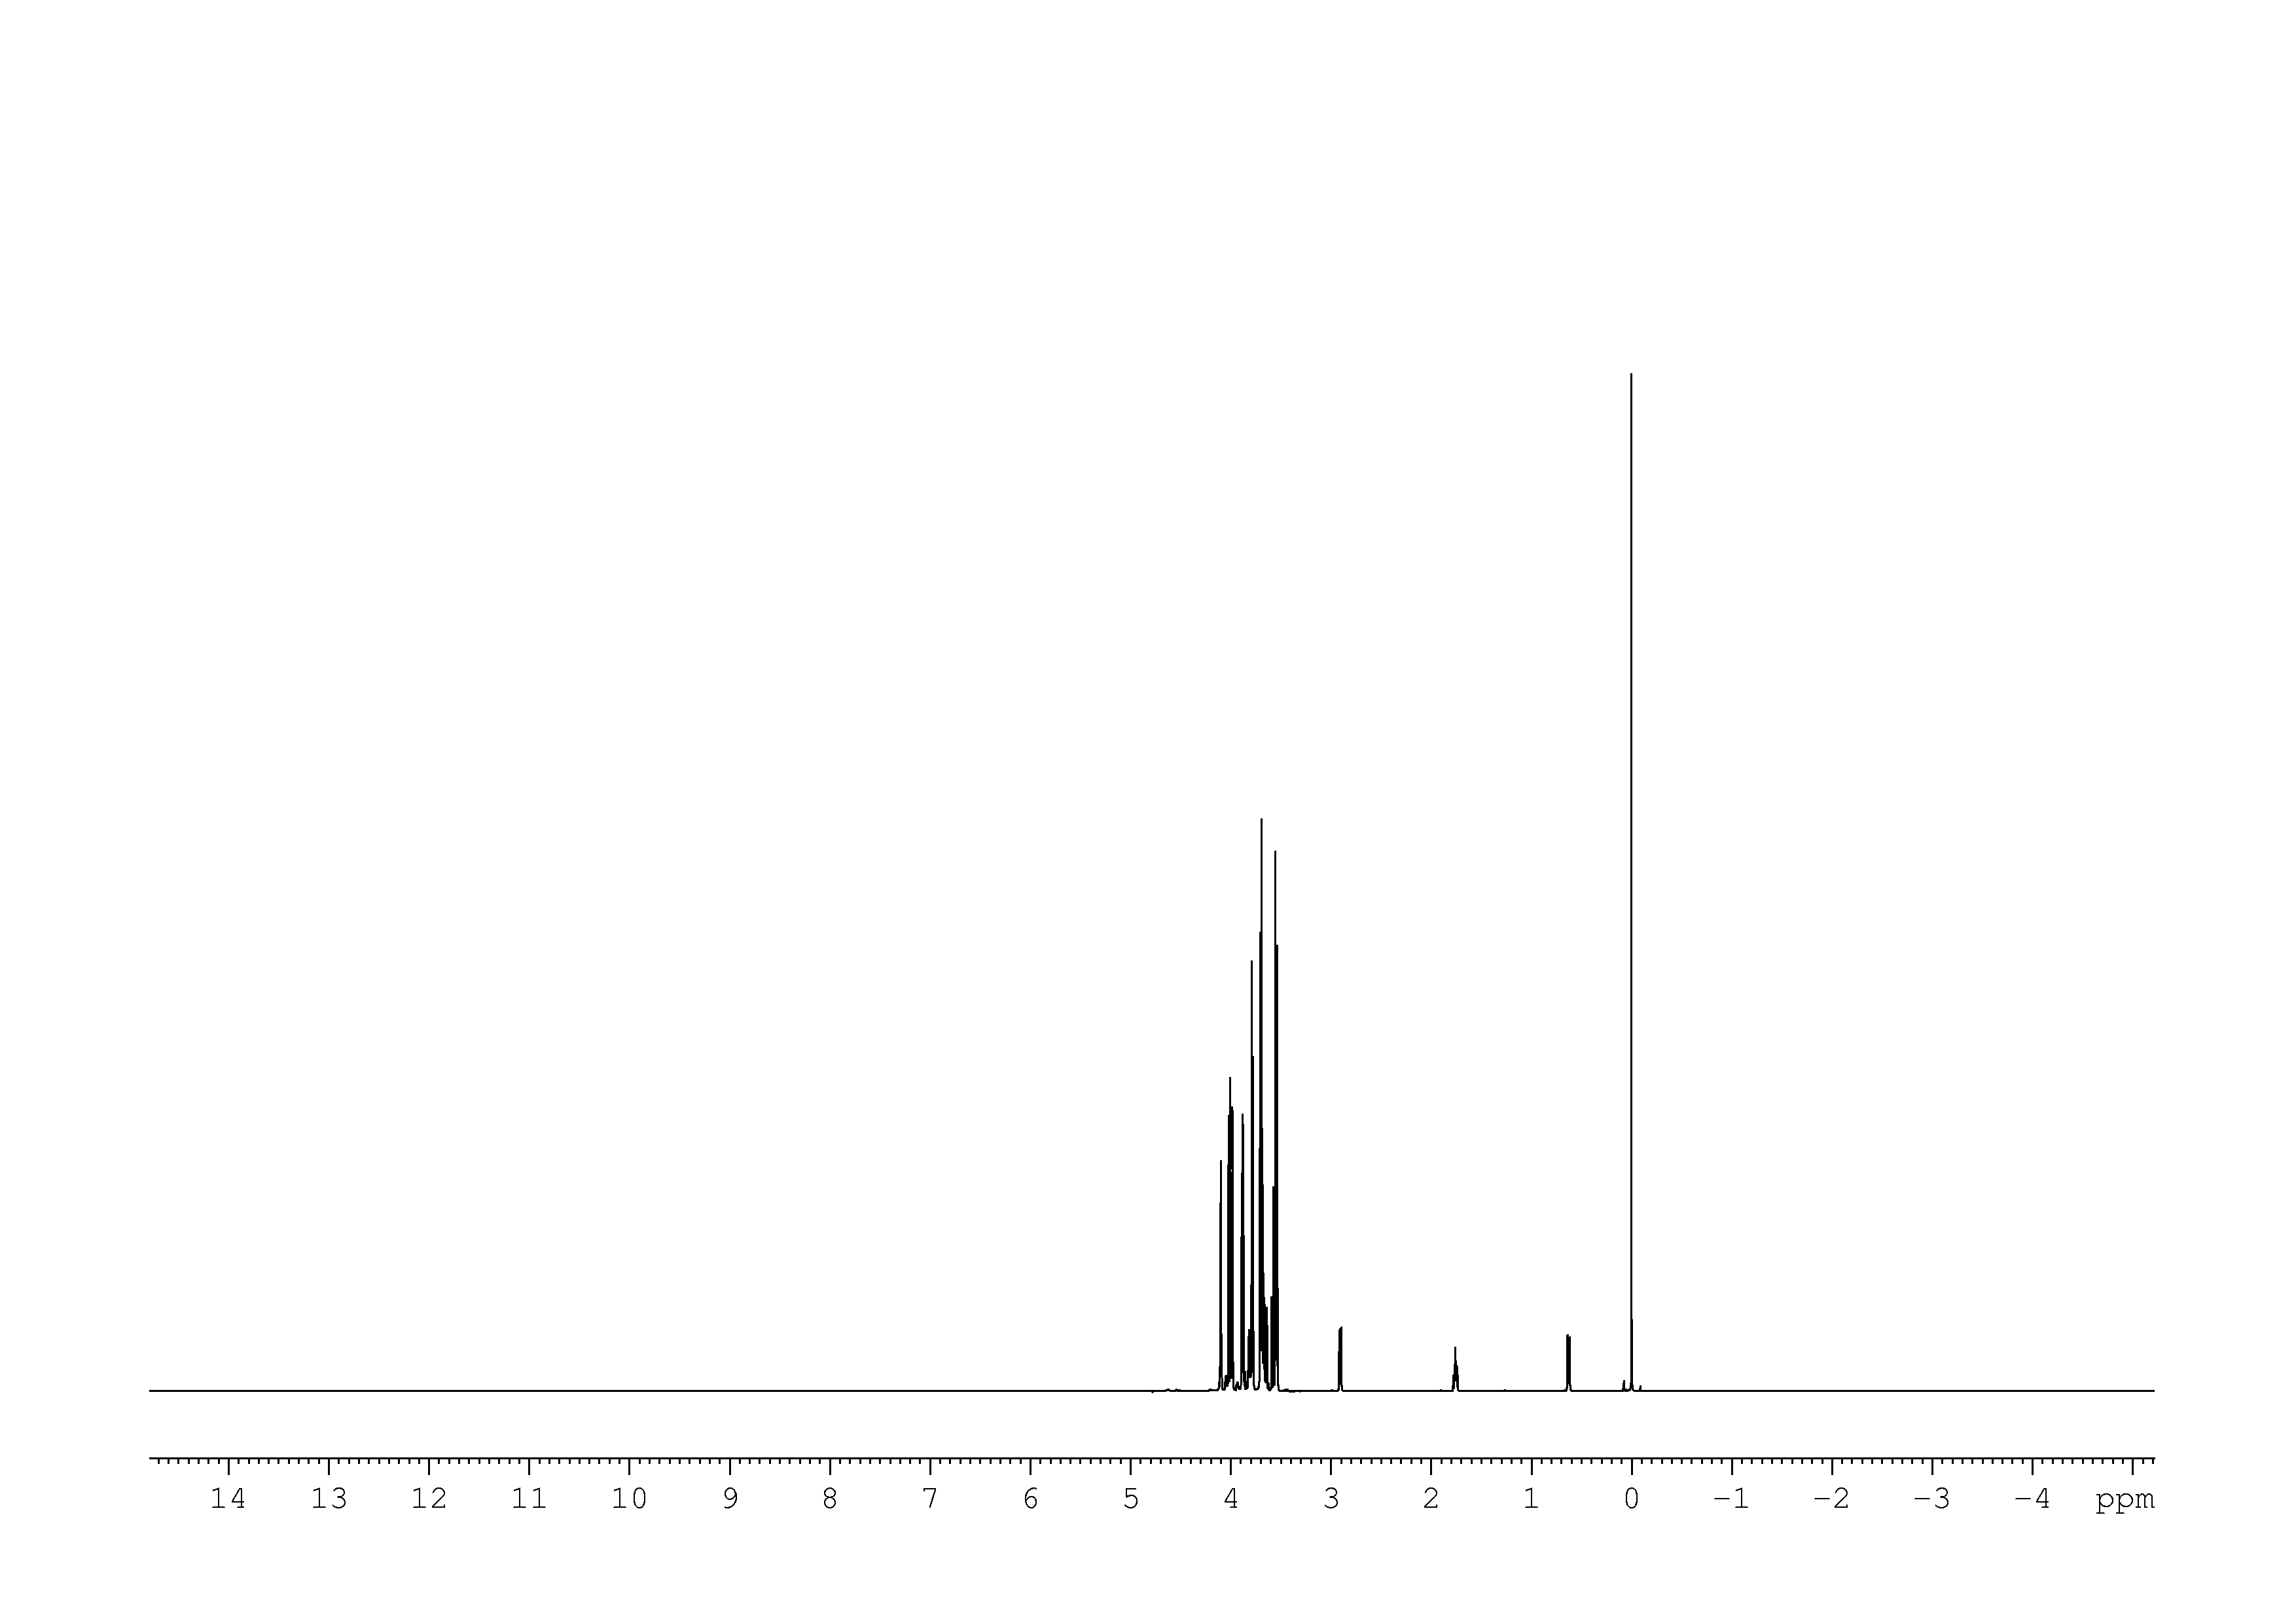 1D 1H, NOESY, 7.4 spectrum for D-(-)-Fructose